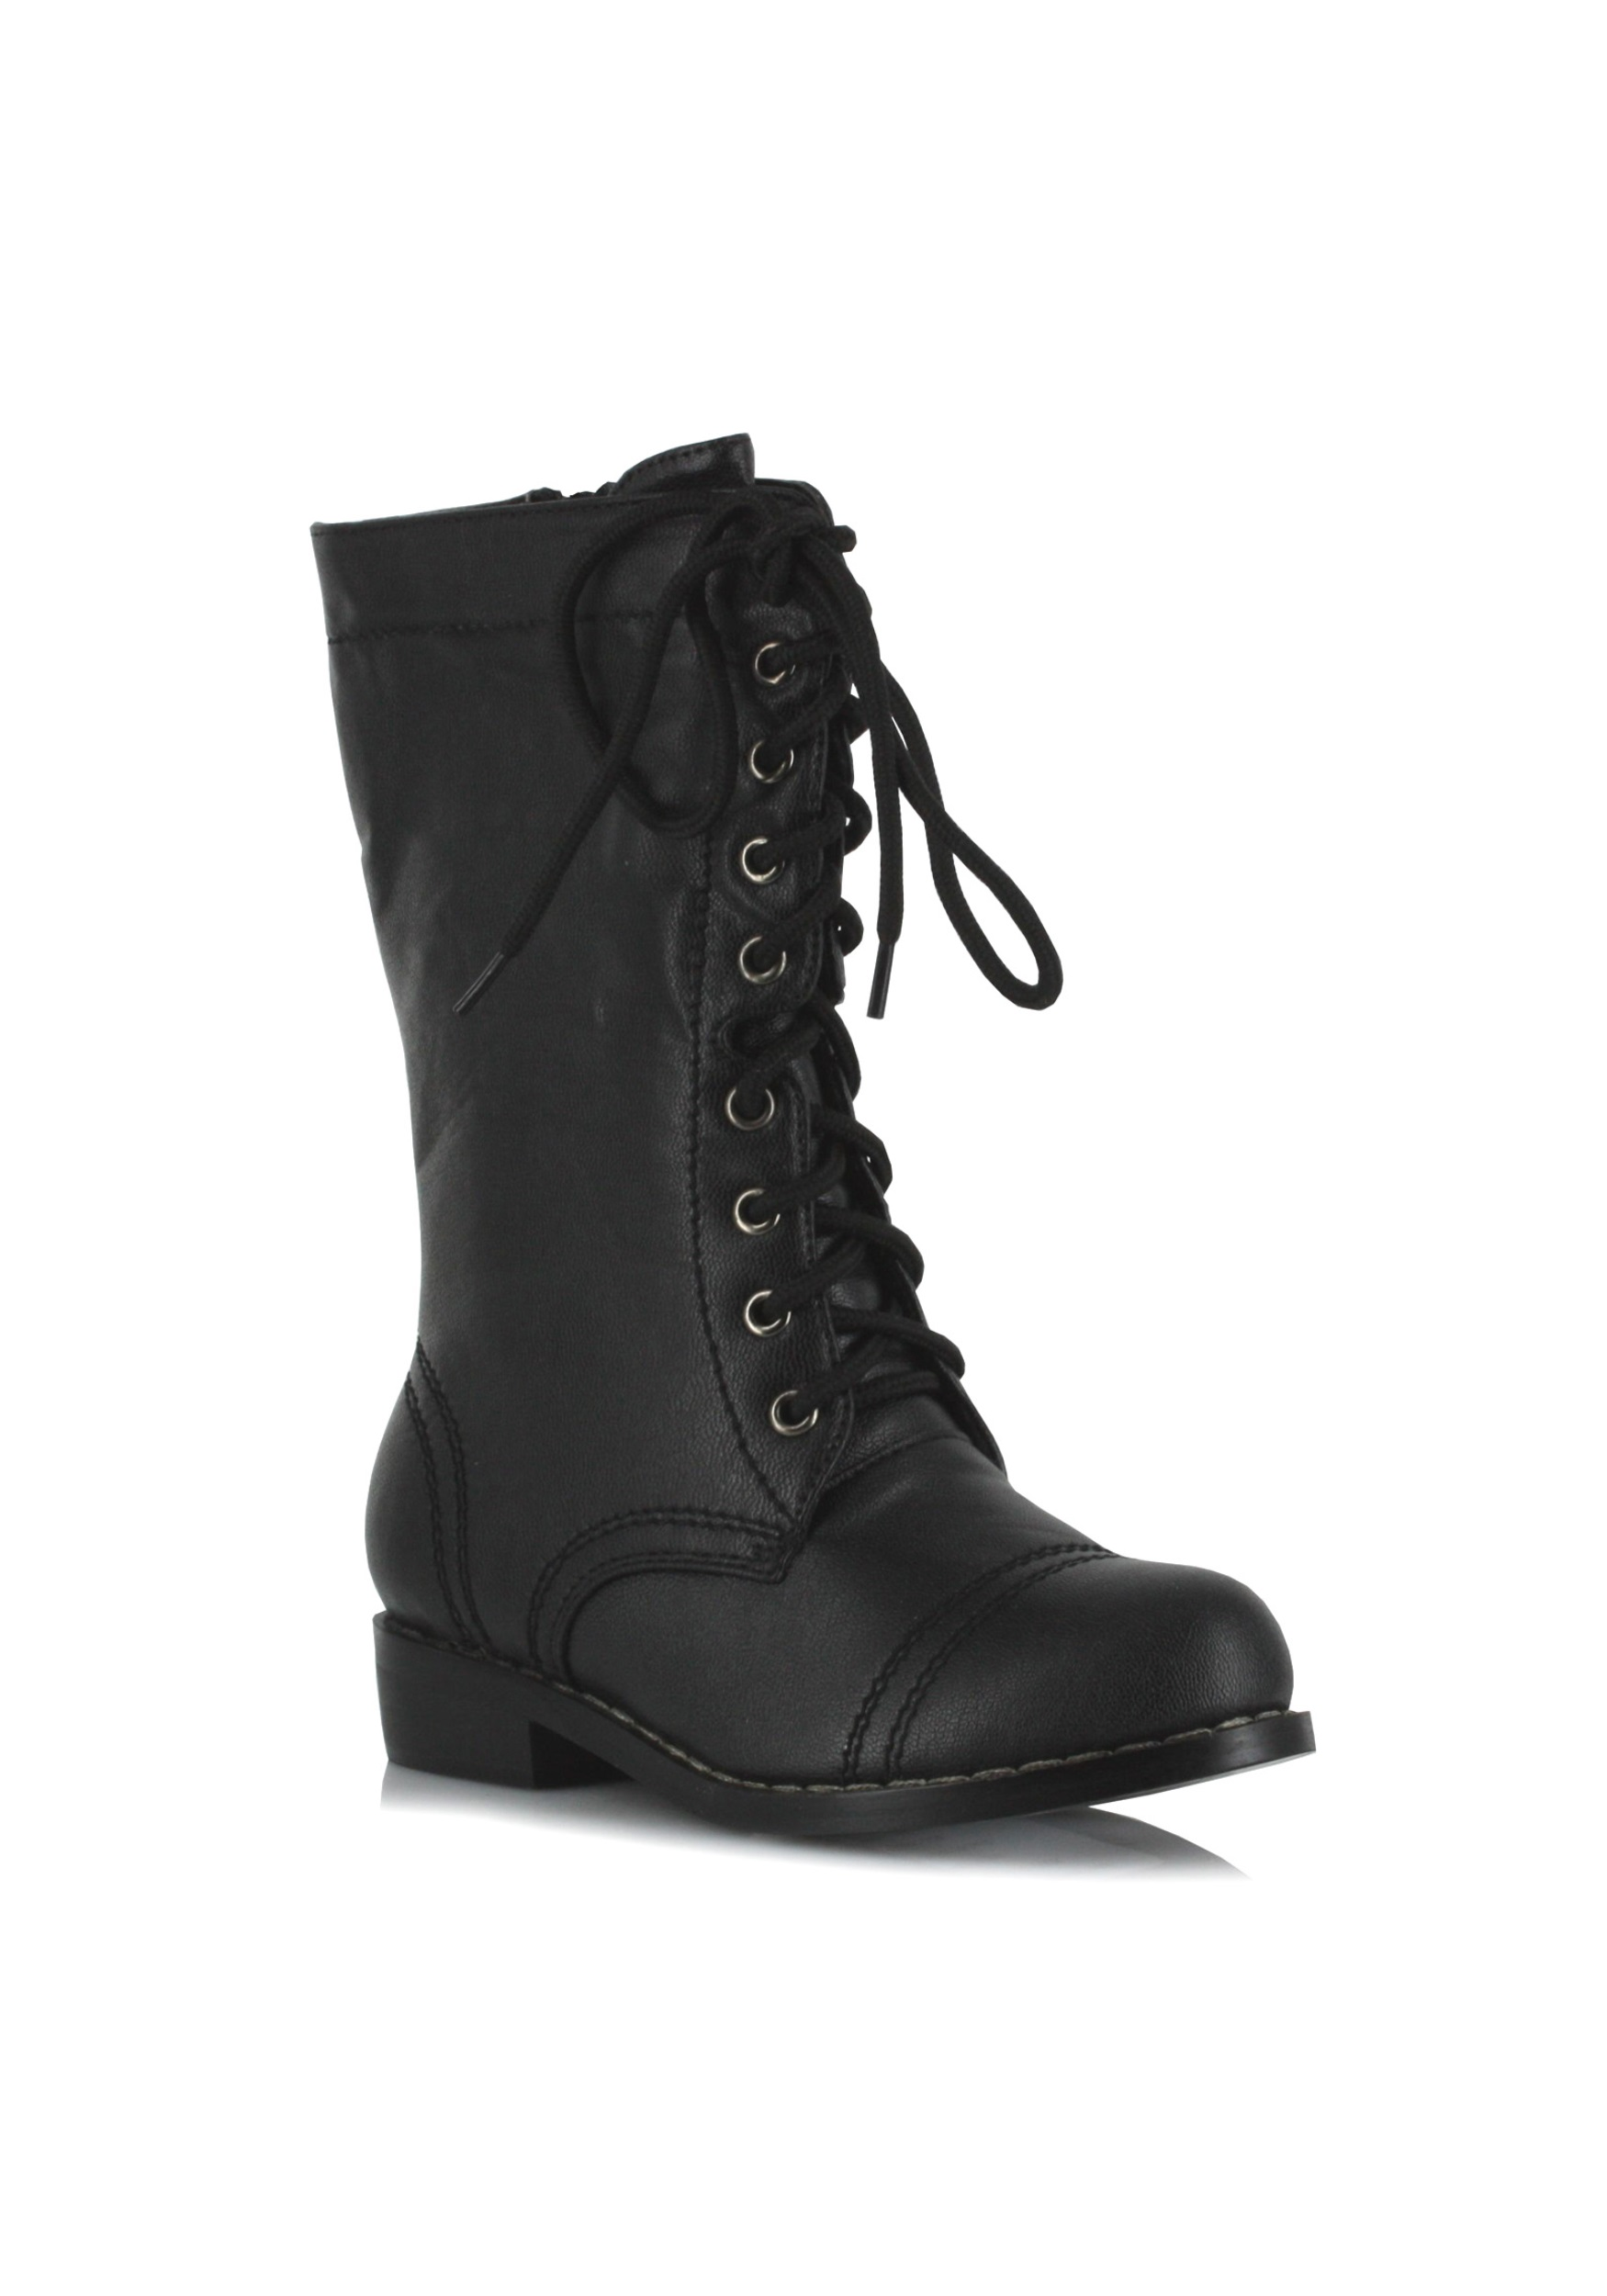 Sexy Boots. Sexy boots is a trend that is fast gaining popularity among the women folk. You will agree with us that a nice pair of boots can transform an outfit almost instantly.